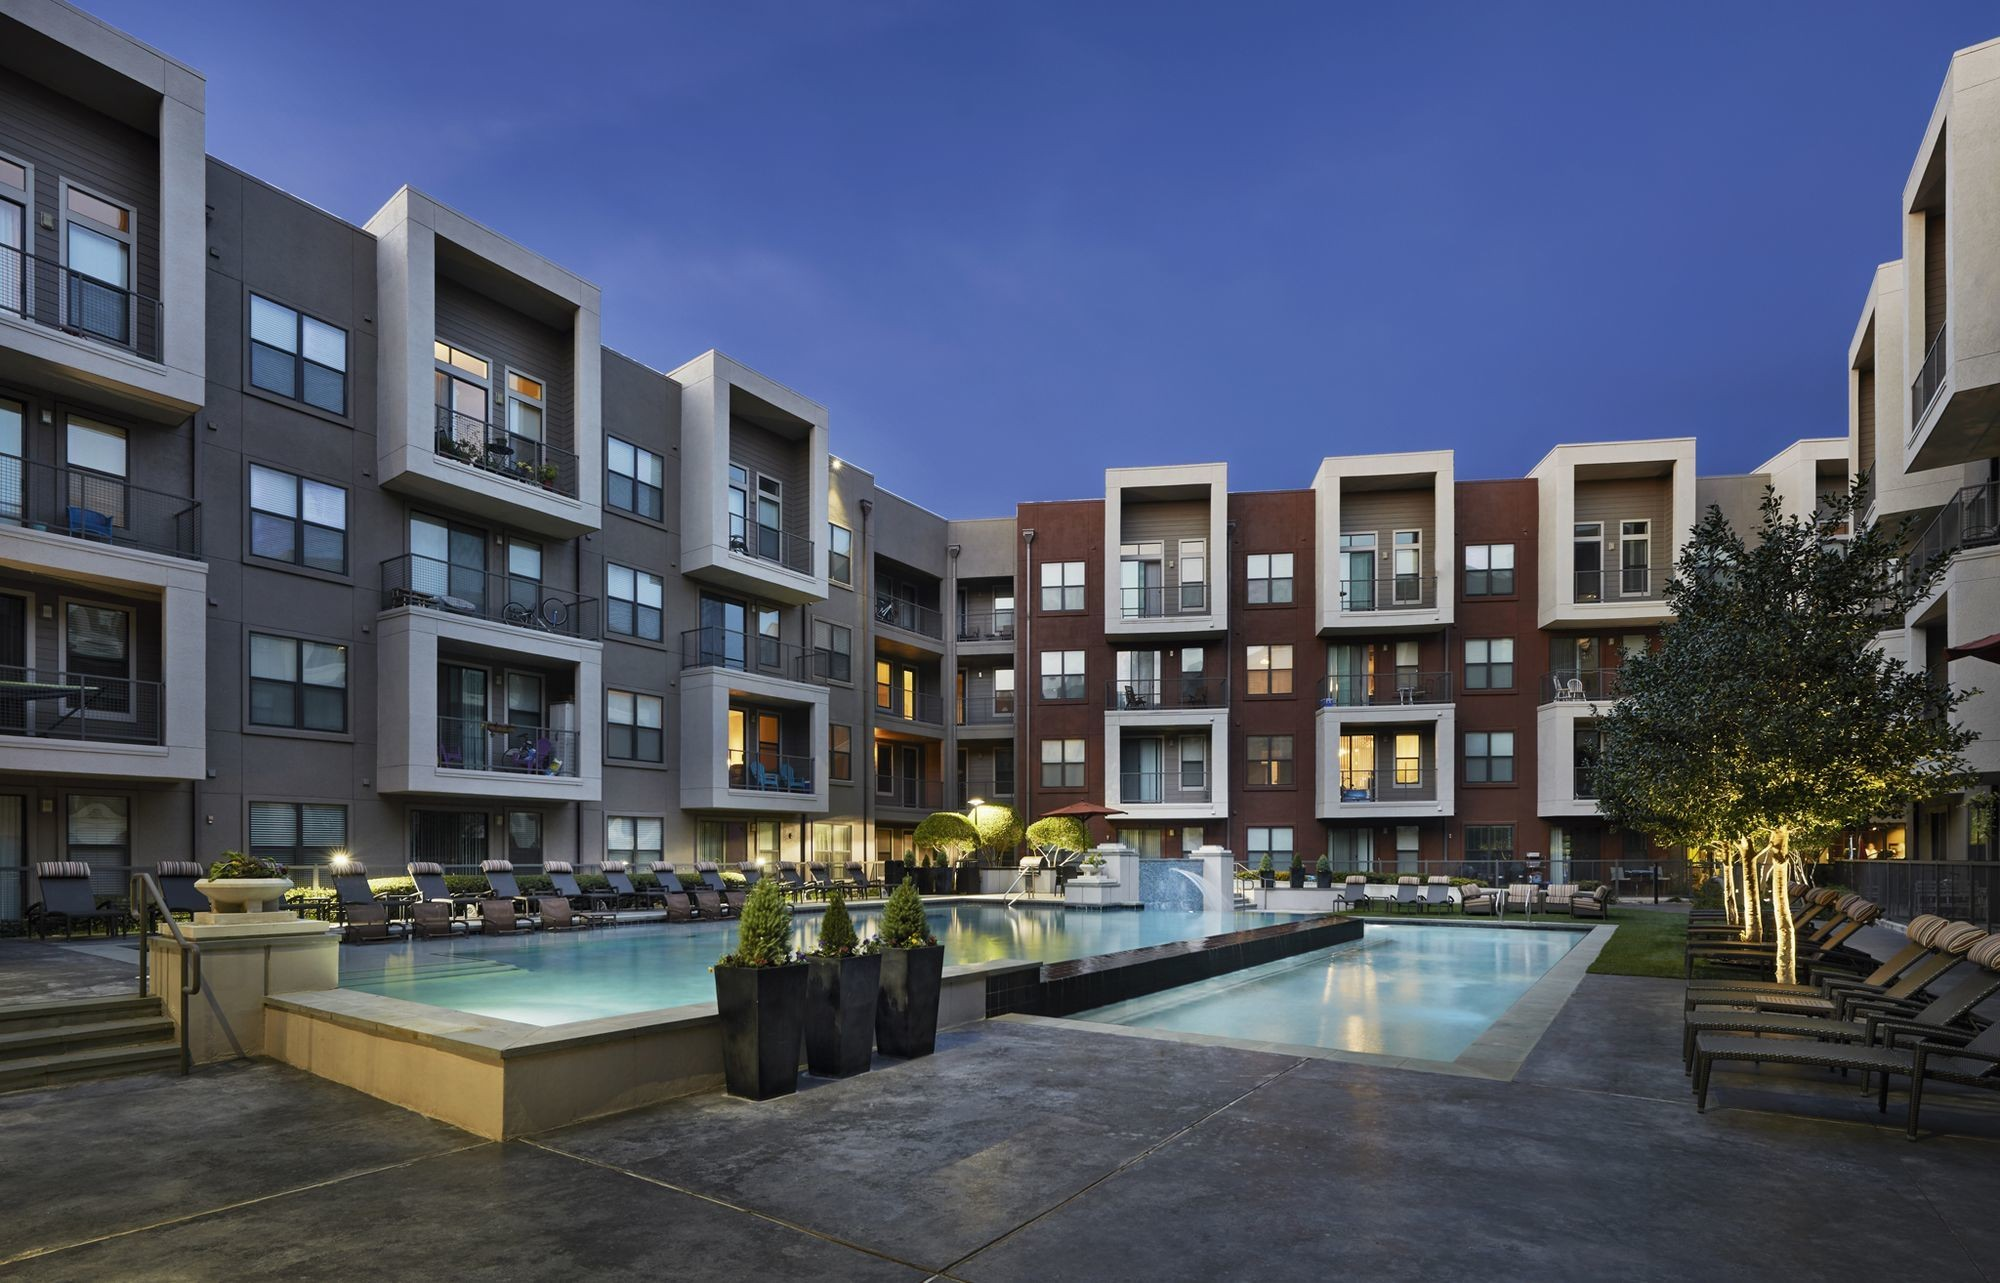 camden design district apartments. Camden Design District Apartments T